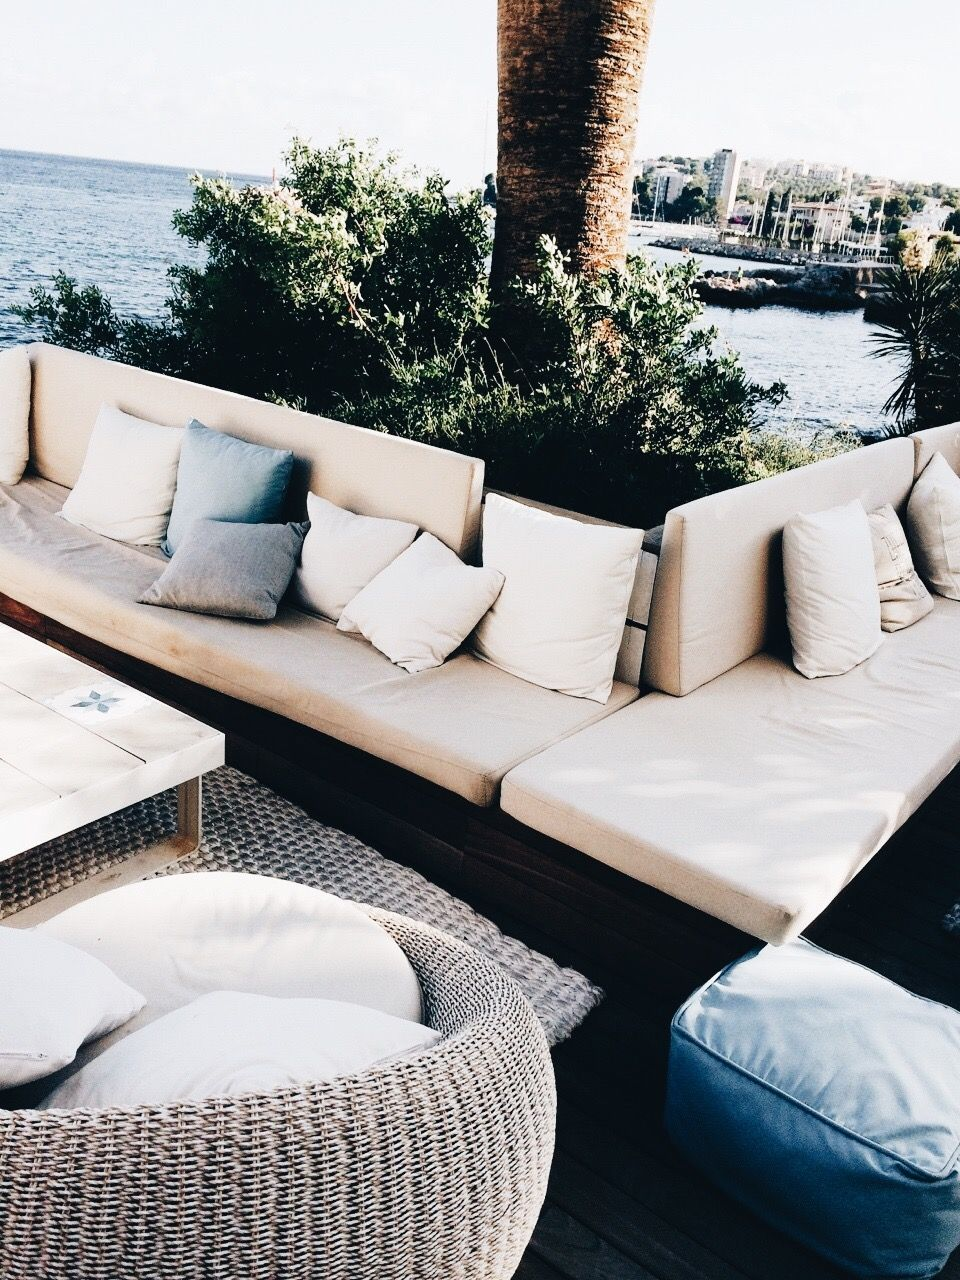 Pin By Samantha Hammack On Dream House Outdoor Living Outdoor Spaces Home